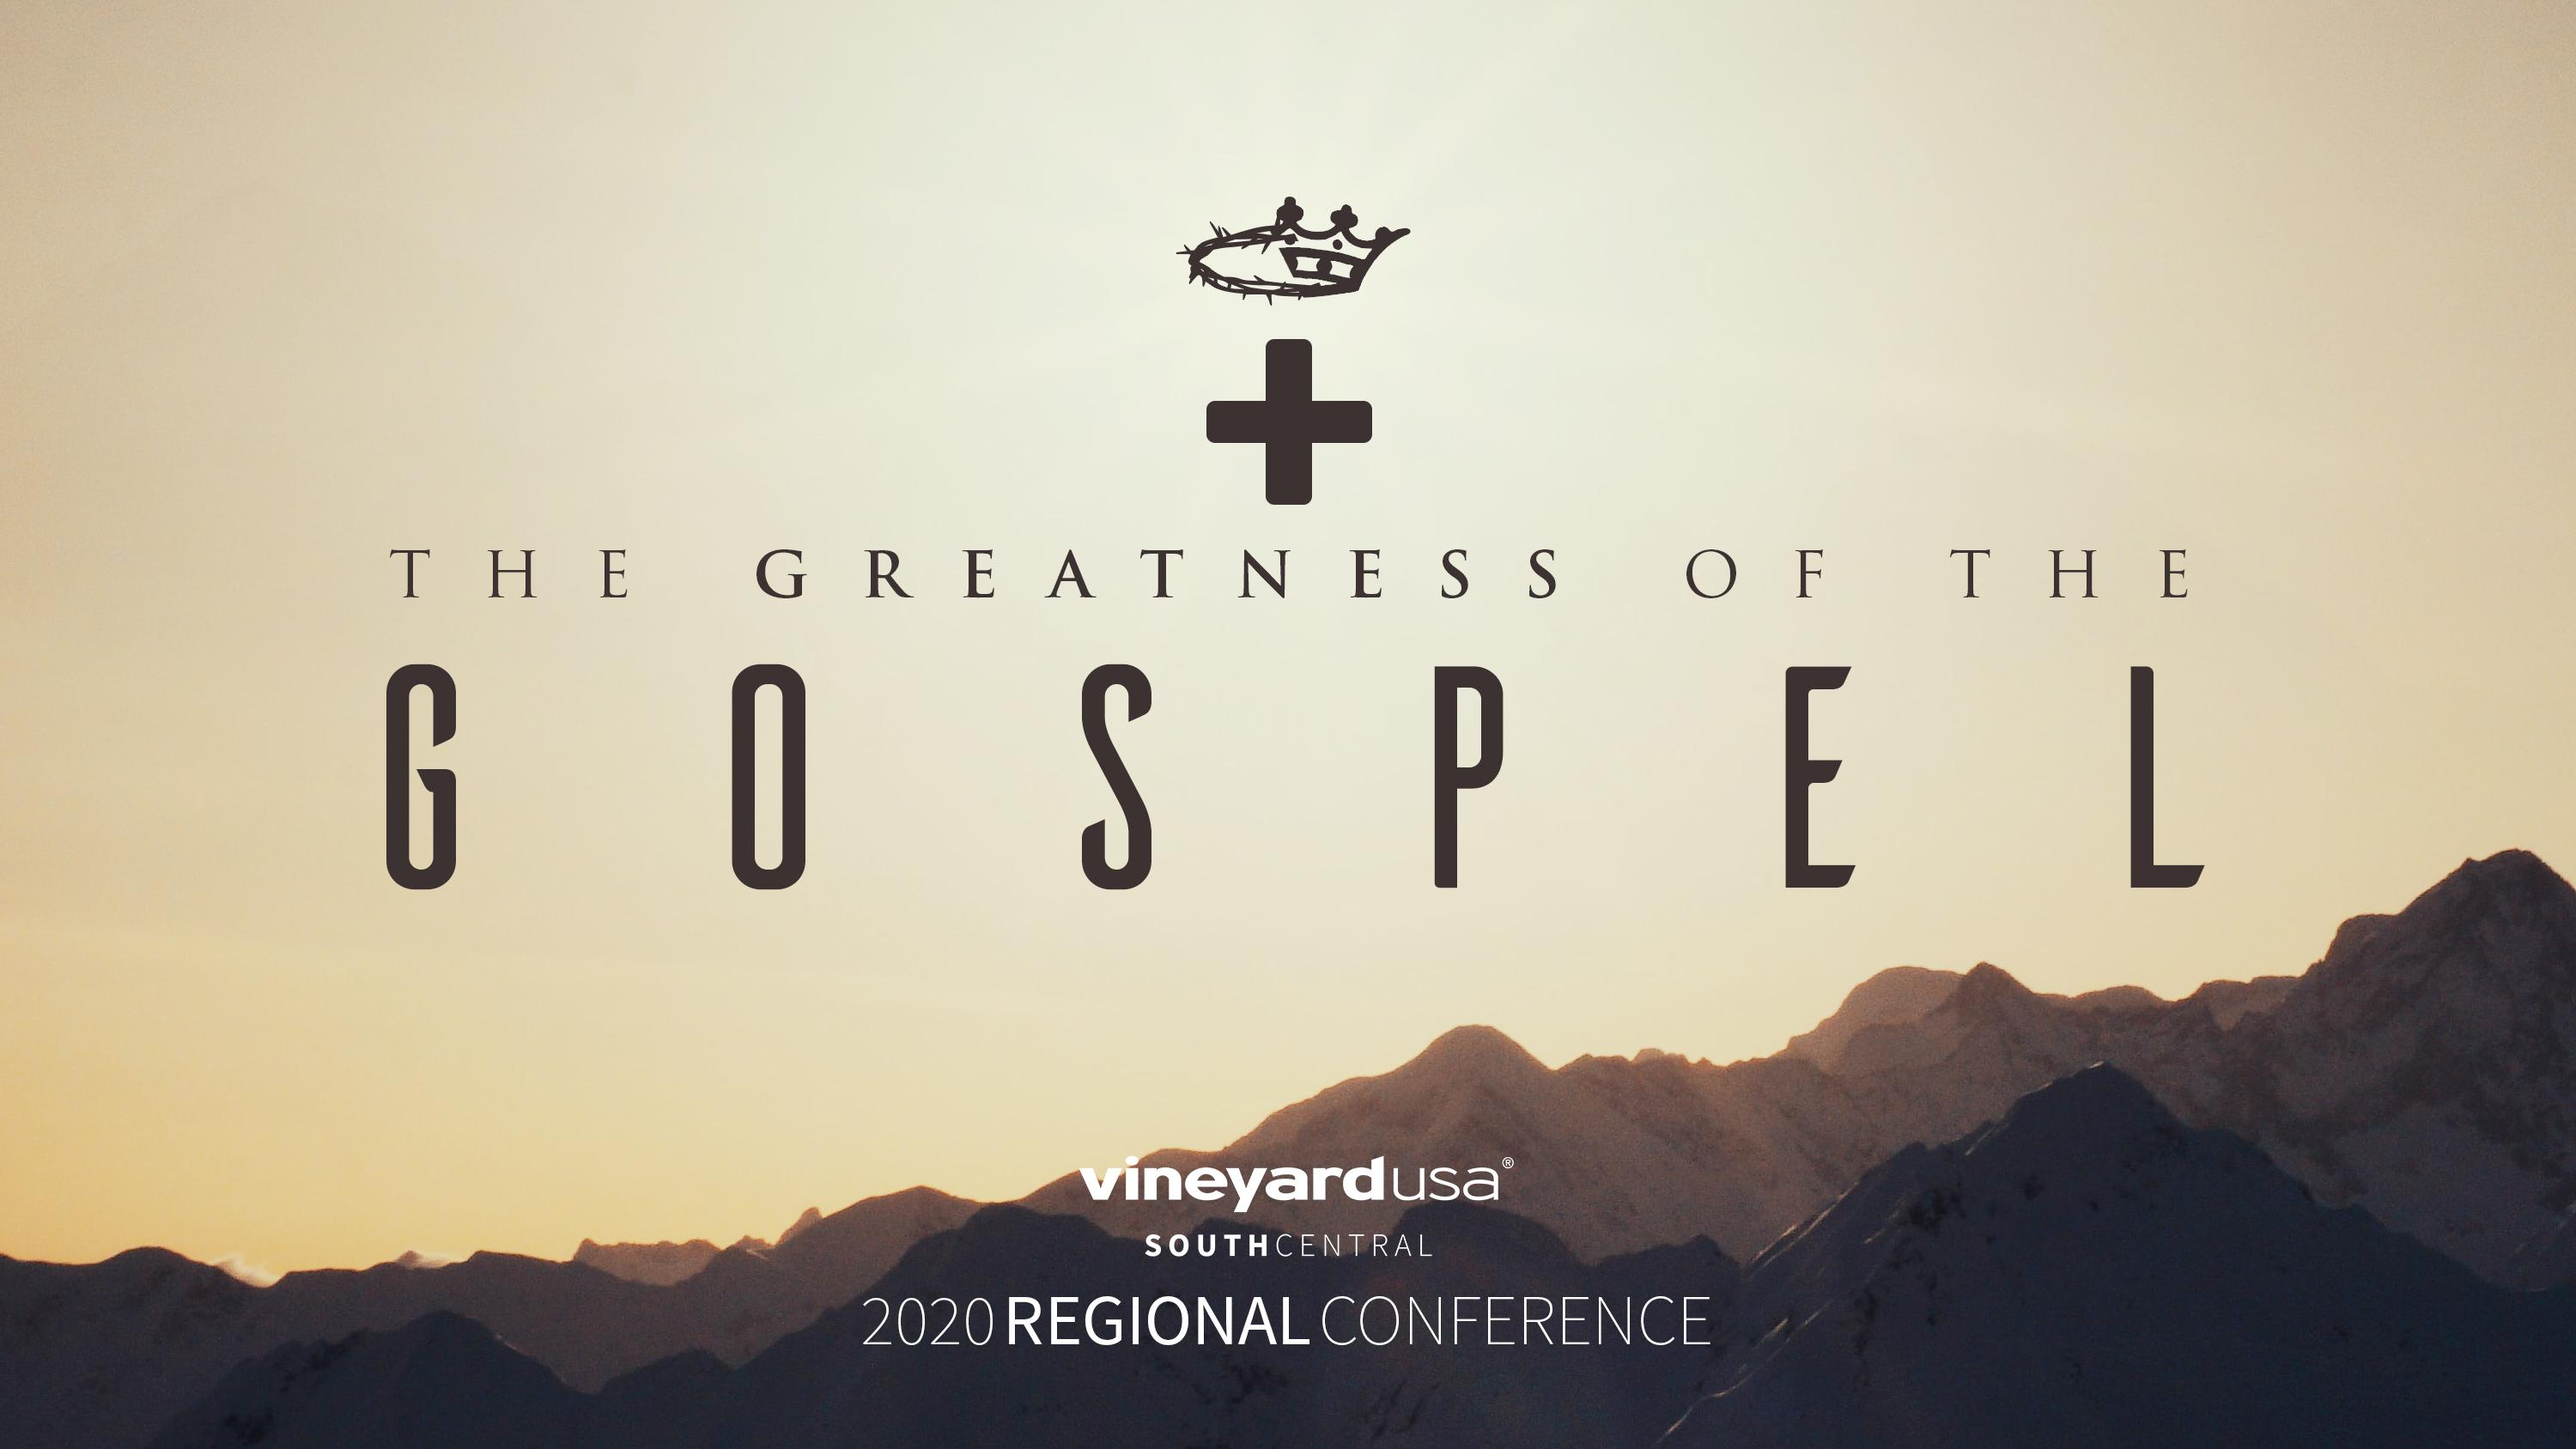 2020 Vineyard South Central Regional Conference